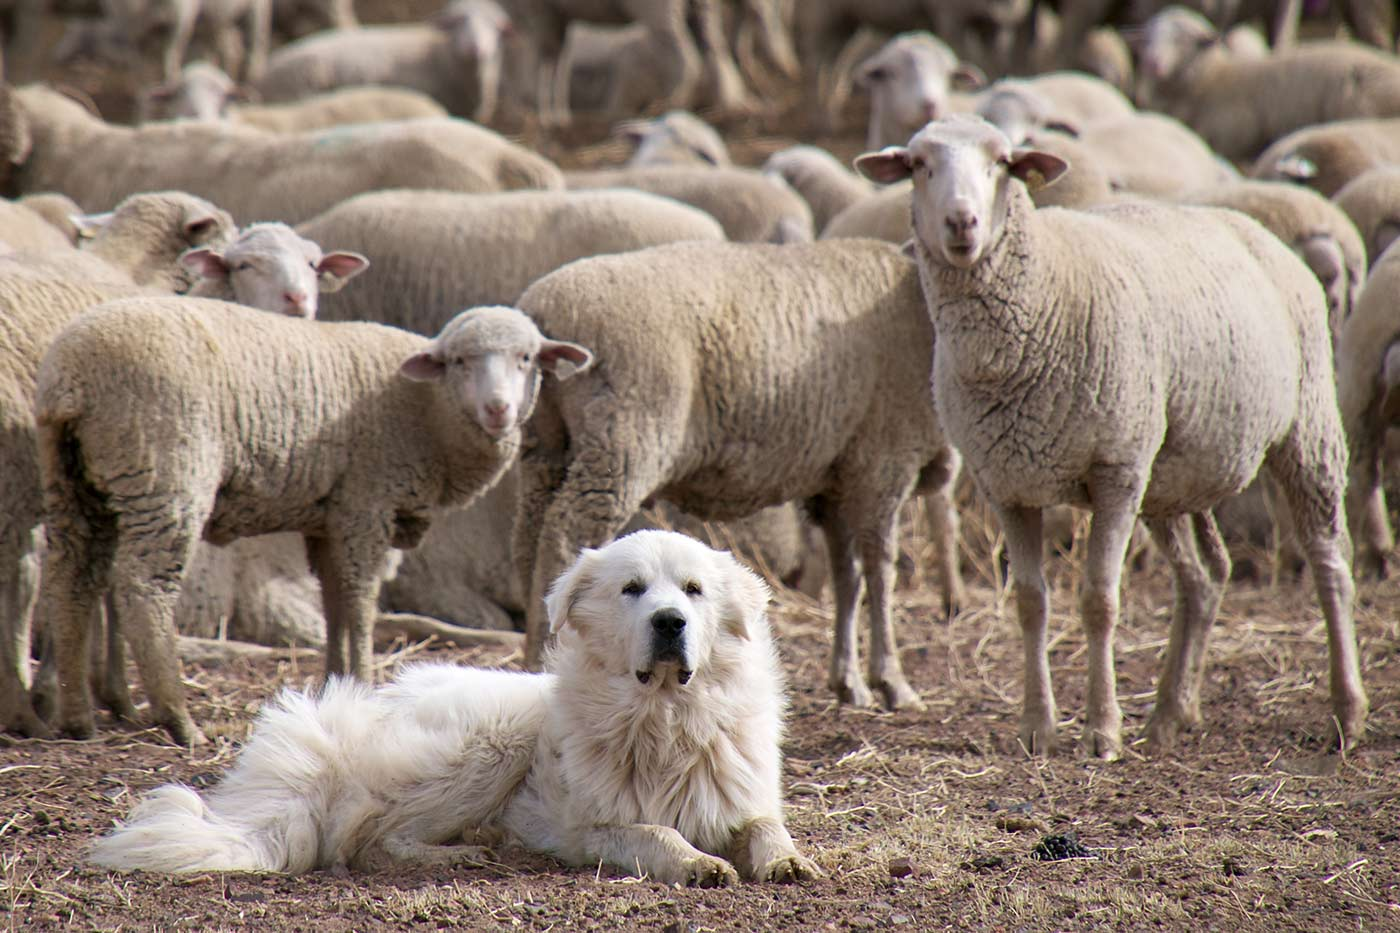 Great Pyrenees sheep dog guarding the flock.